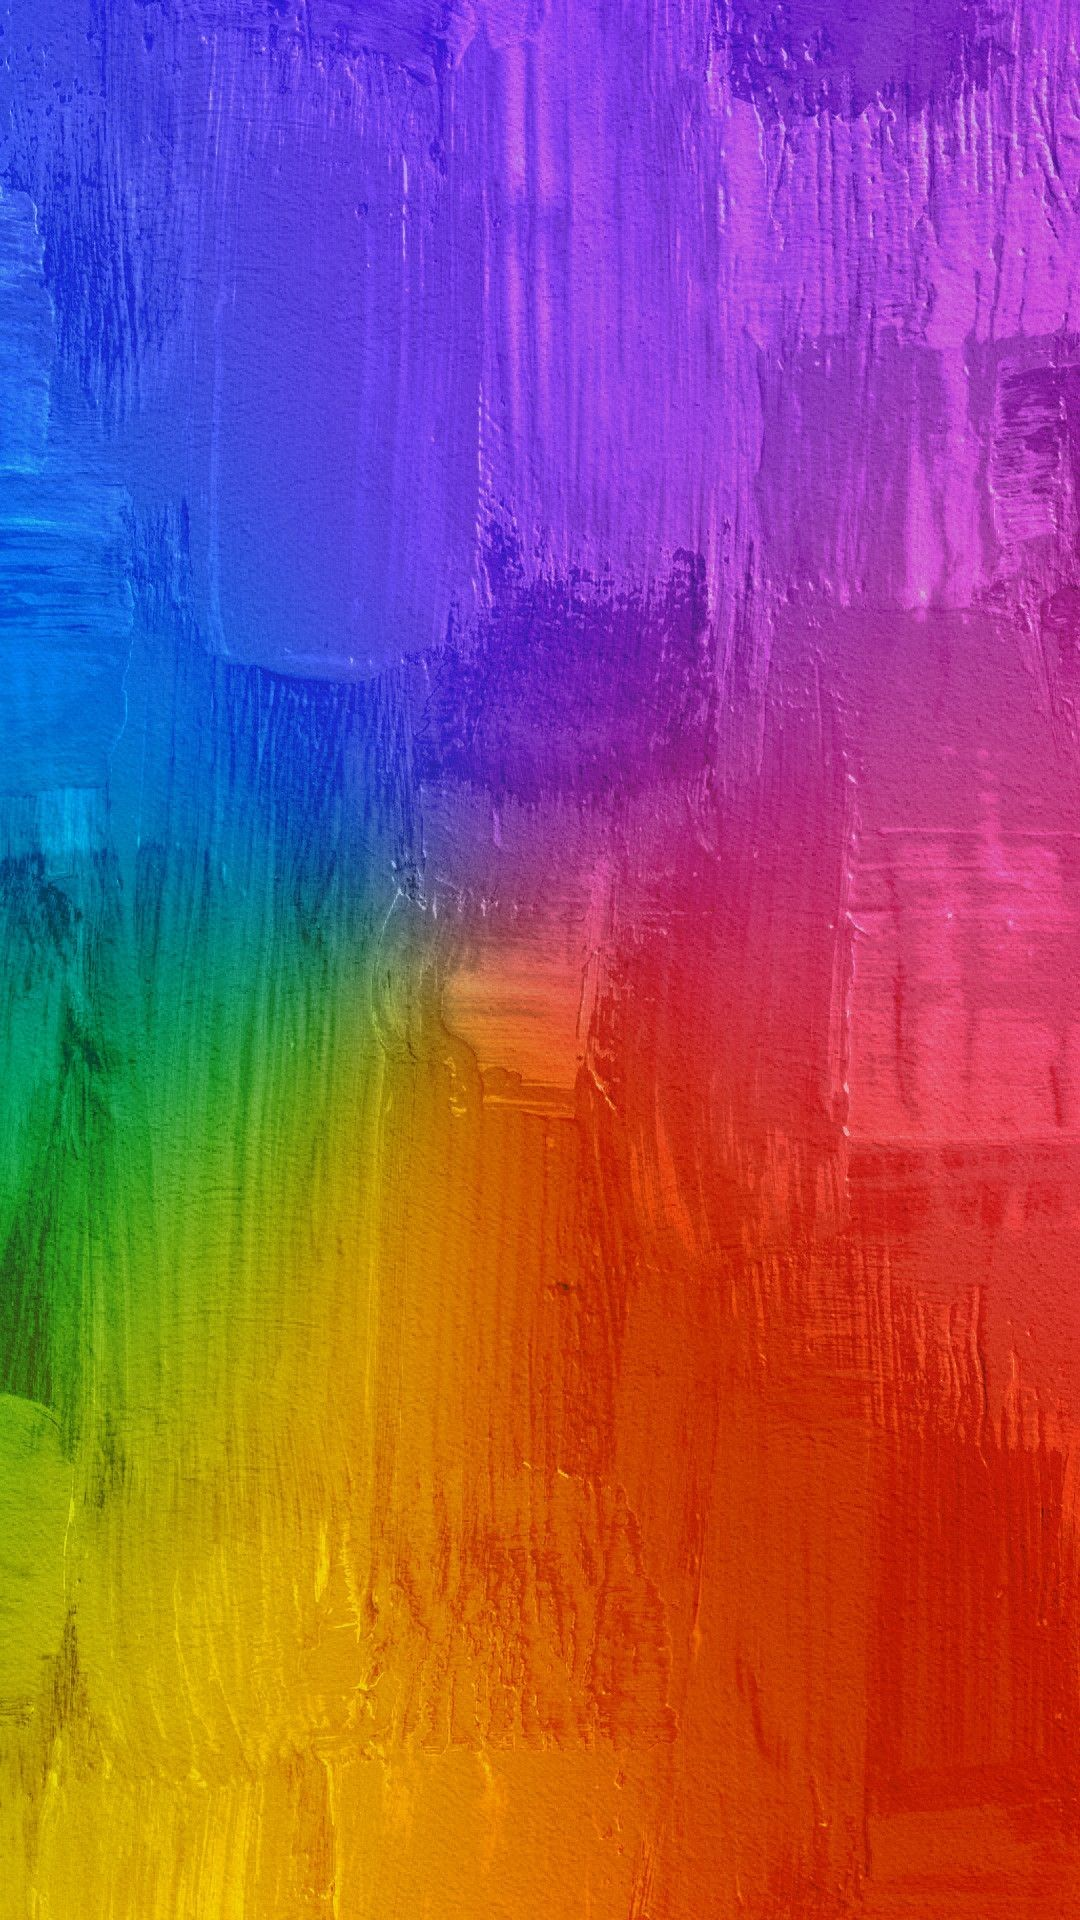 Res: 1080x1920, Fondo de colores arco iris | Rainbow wallpaper - #backgrounds #colores # colors